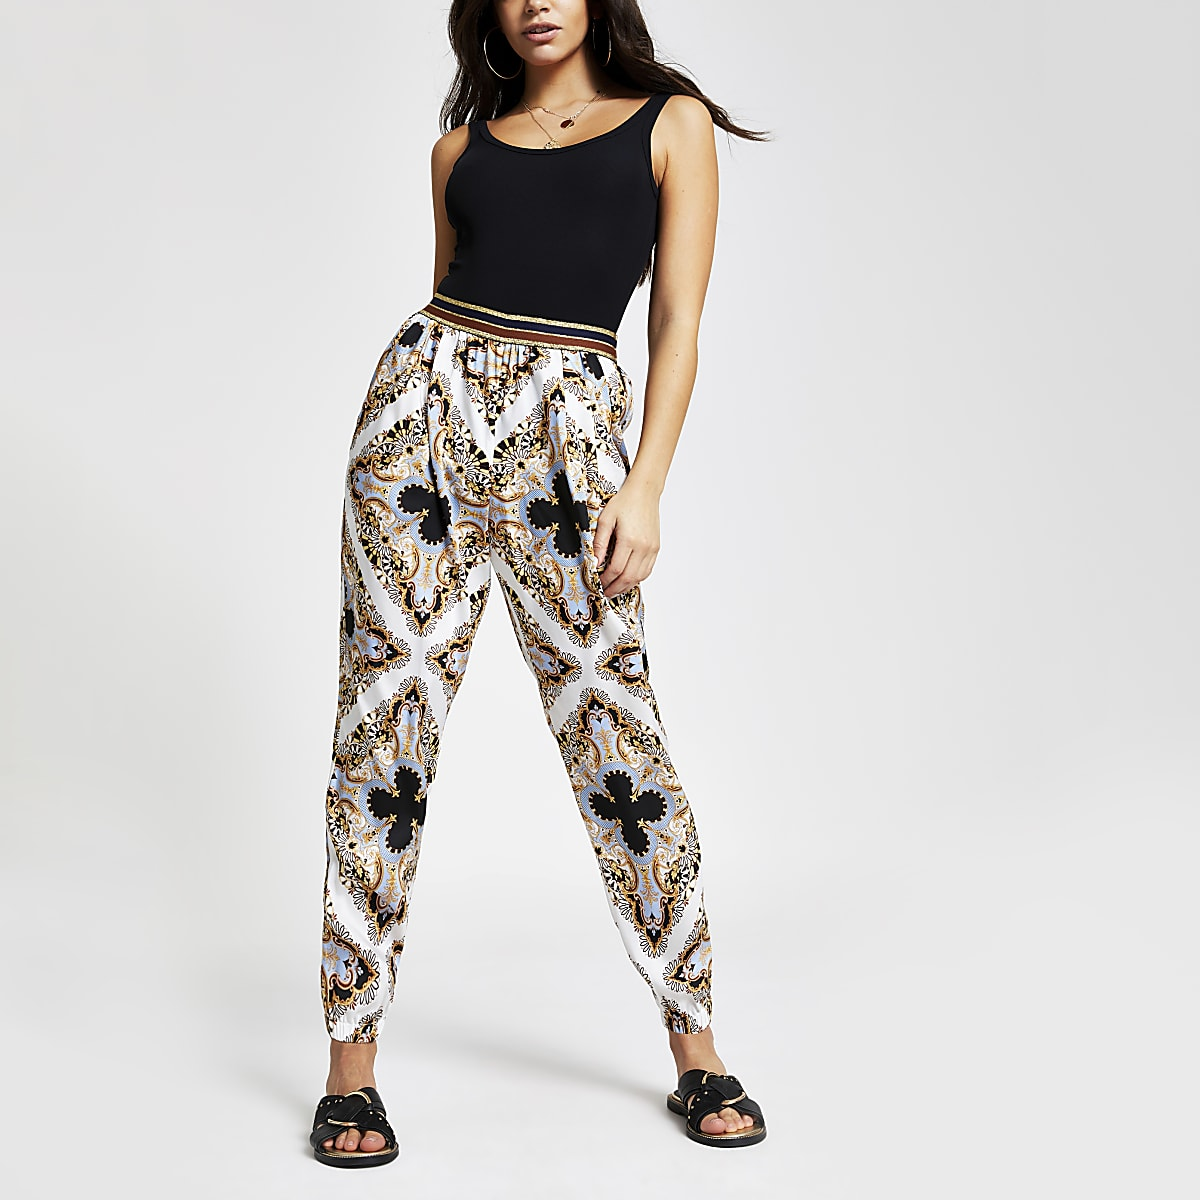 Blue print peg leg pants